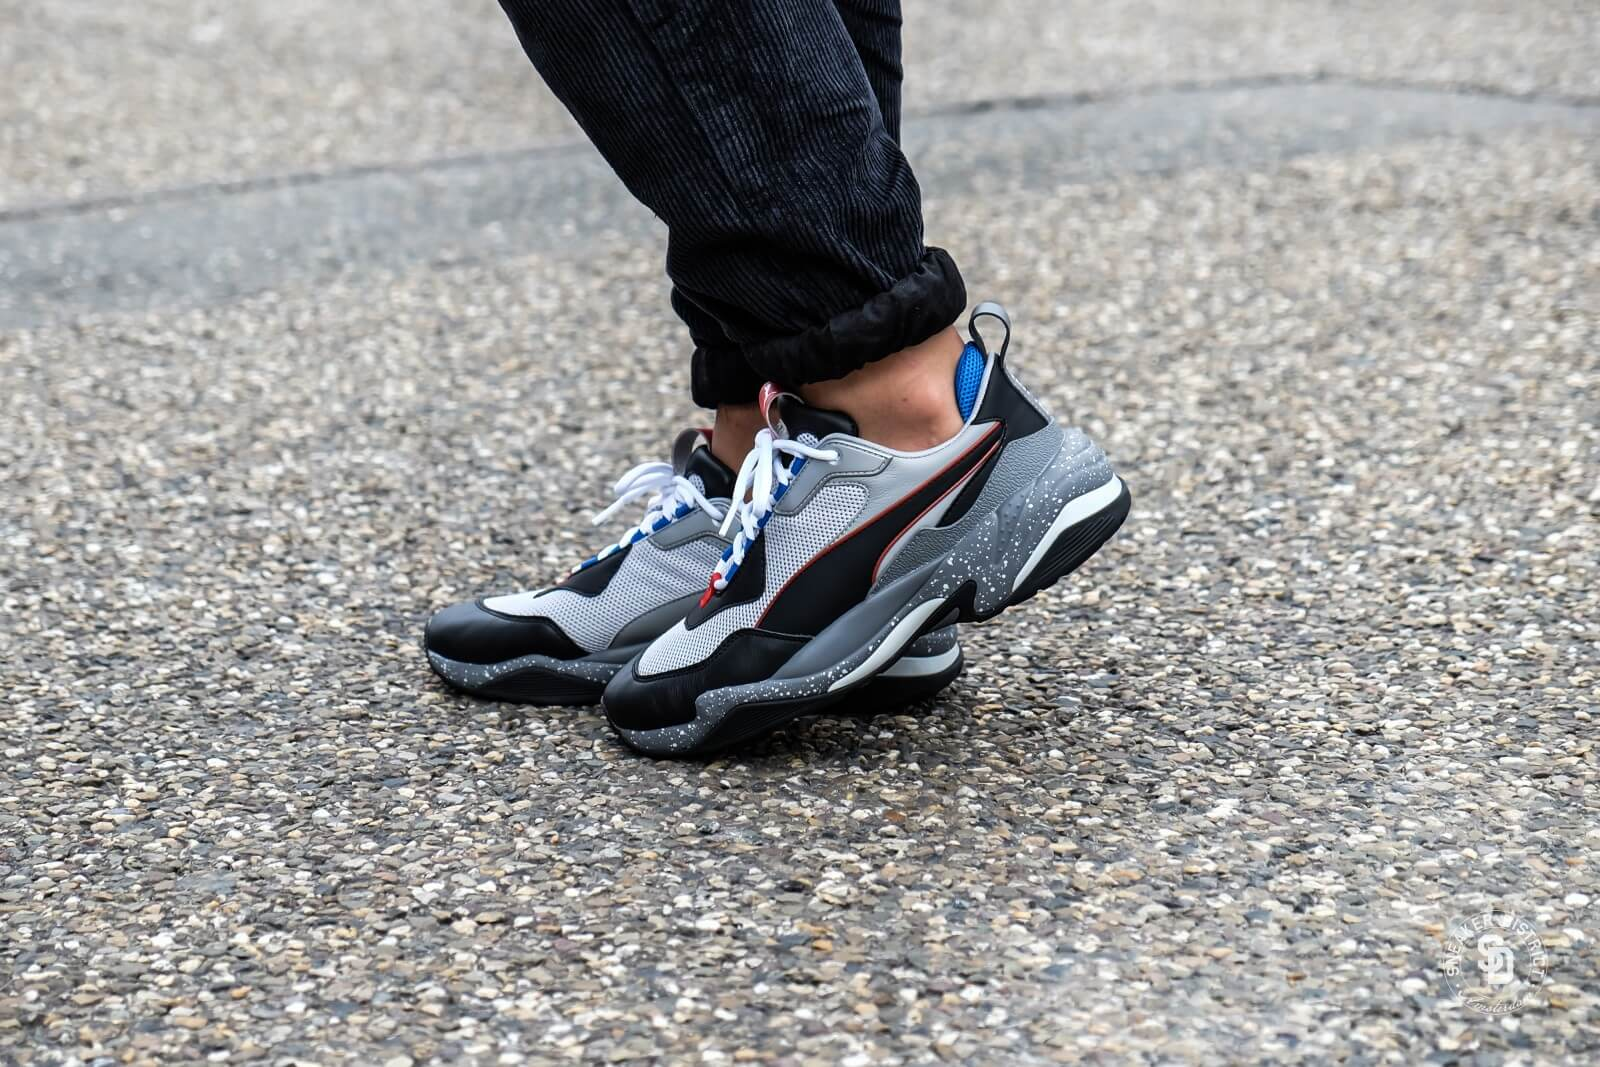 Puma Thunder Electric Gray Violet/Black-Quiet Shade - 0367996-02